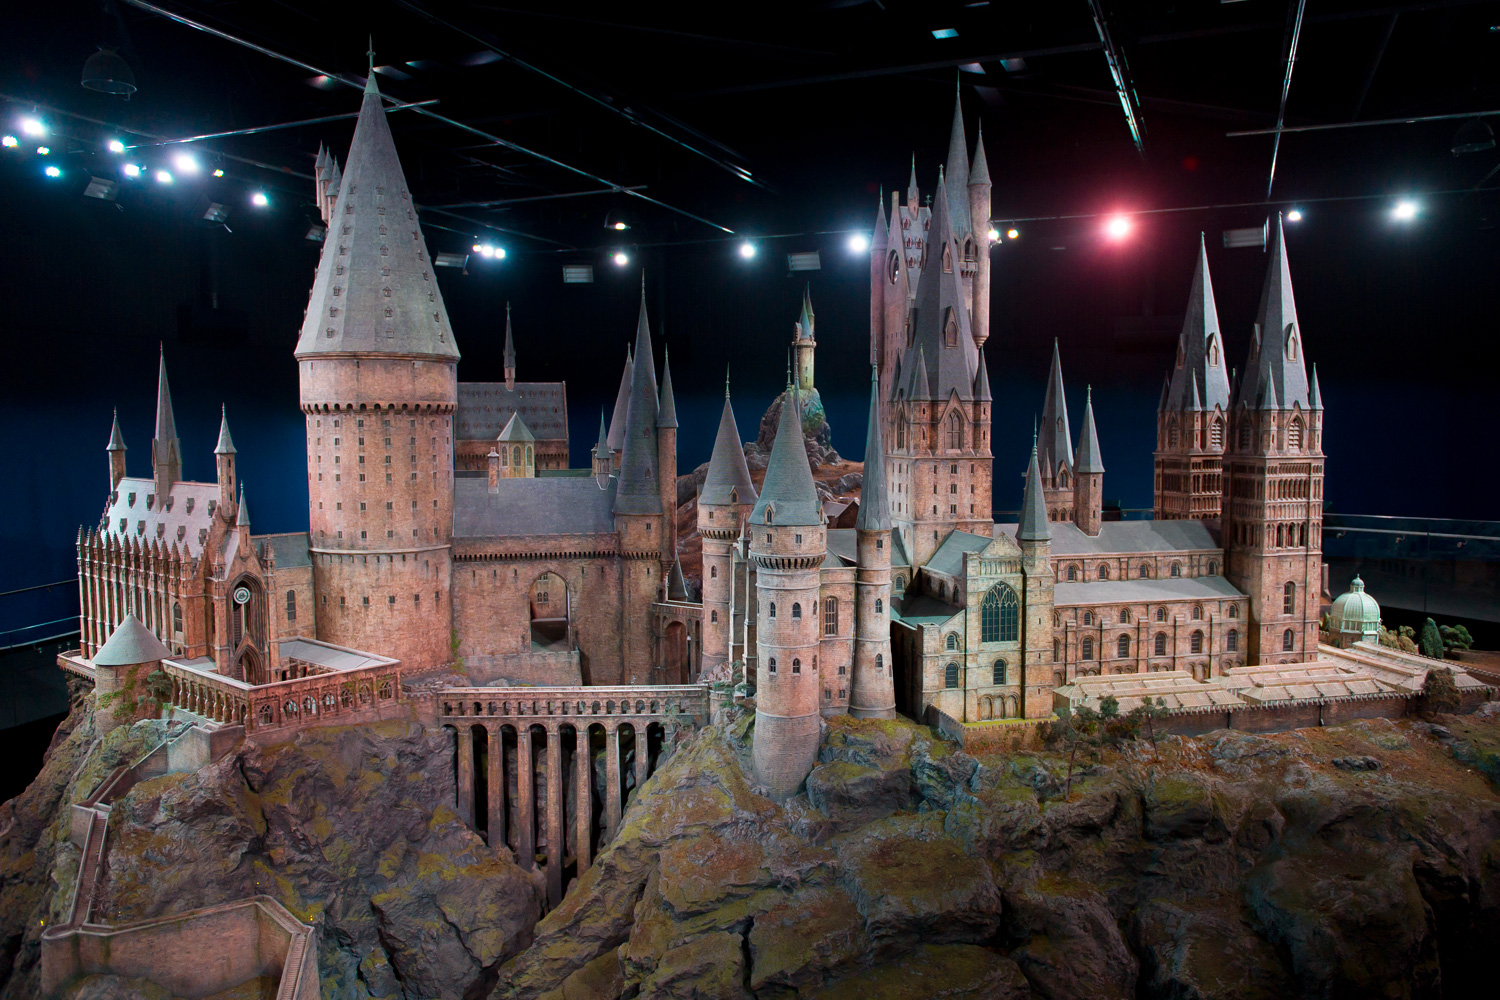 March 1, 2012. A model of Hogwarts castle from the Harry Potter film series is unveiled at the Warner Bros Studio Tour, Watford, London.